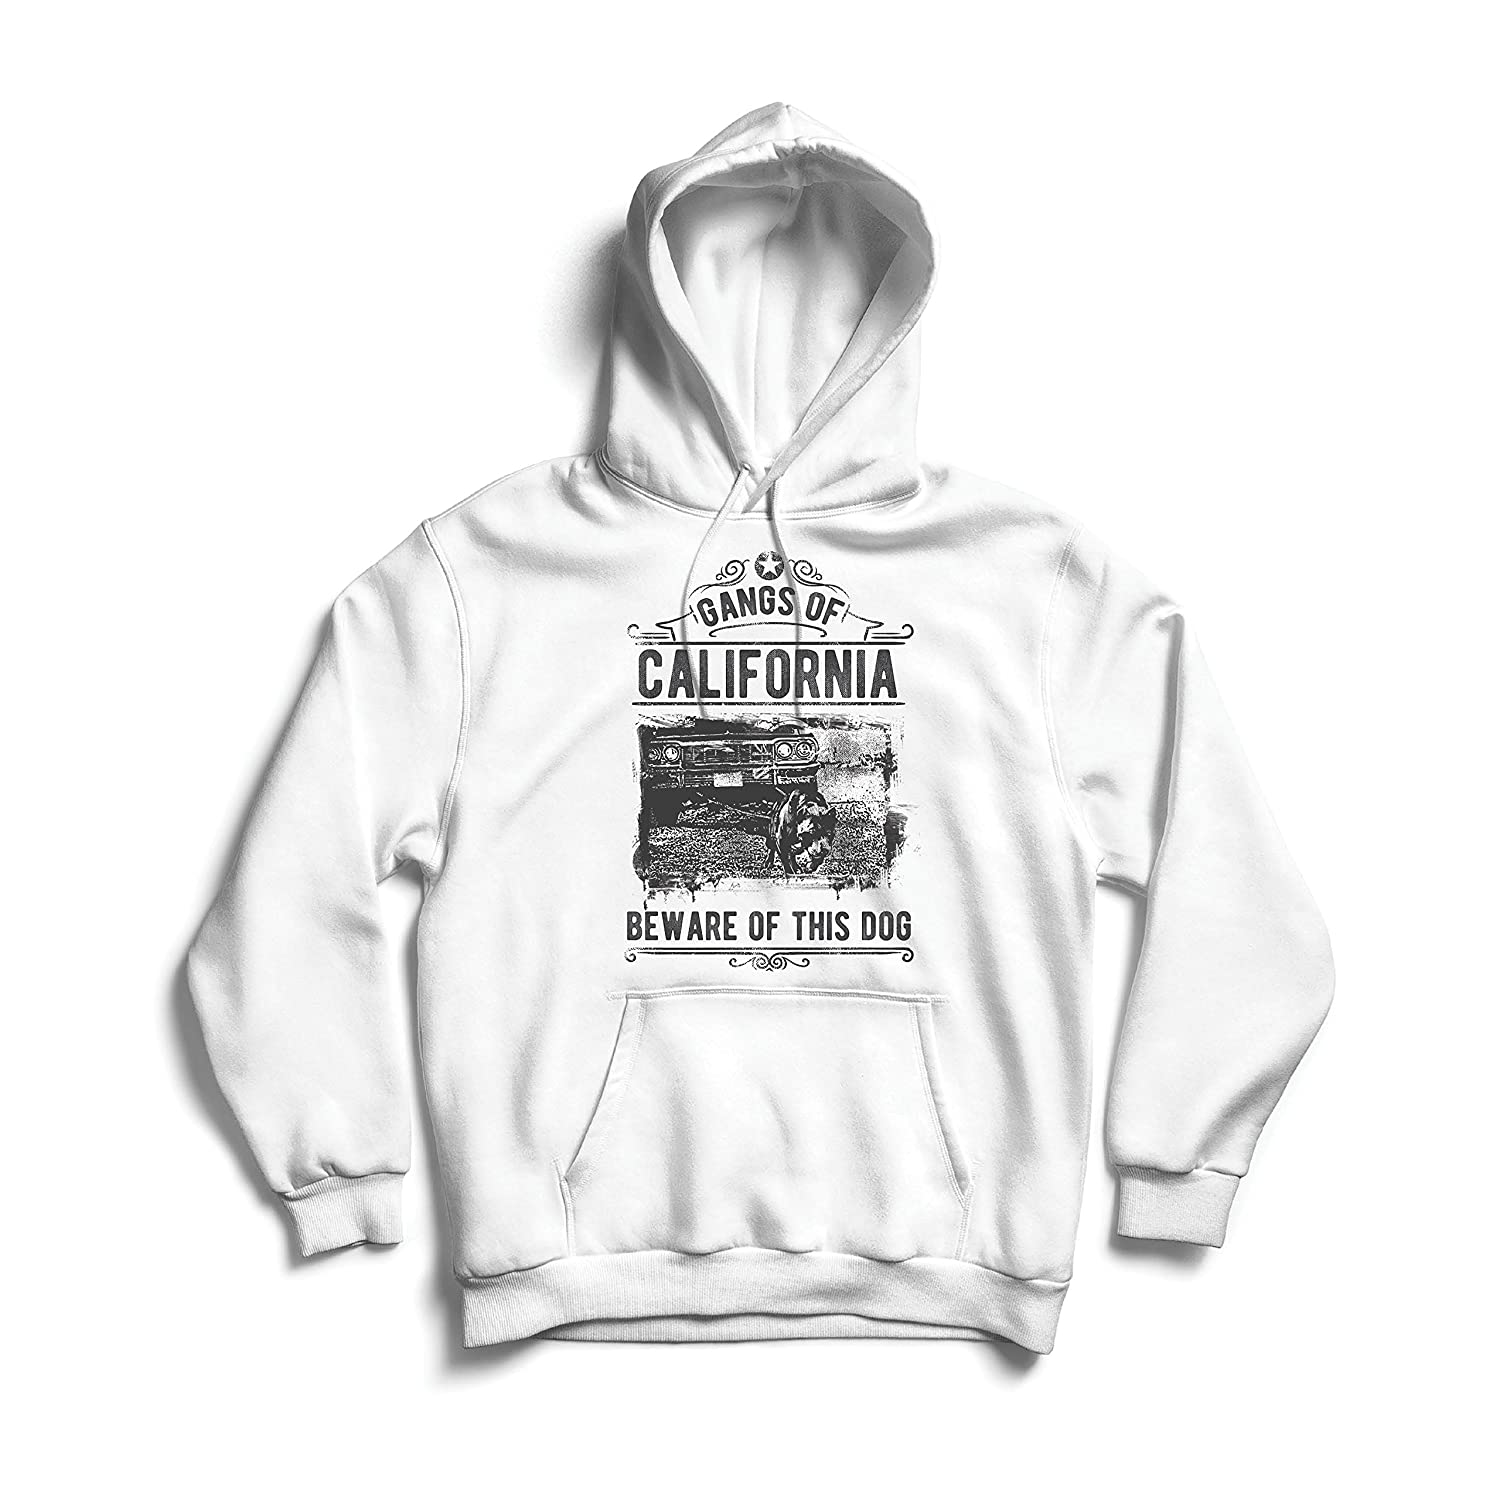 Amazon.com: lepni.me Hoodie The Gangs of California - Beware of This Dog! Street Gangster Clothing - Money, Power, Respect!: Clothing